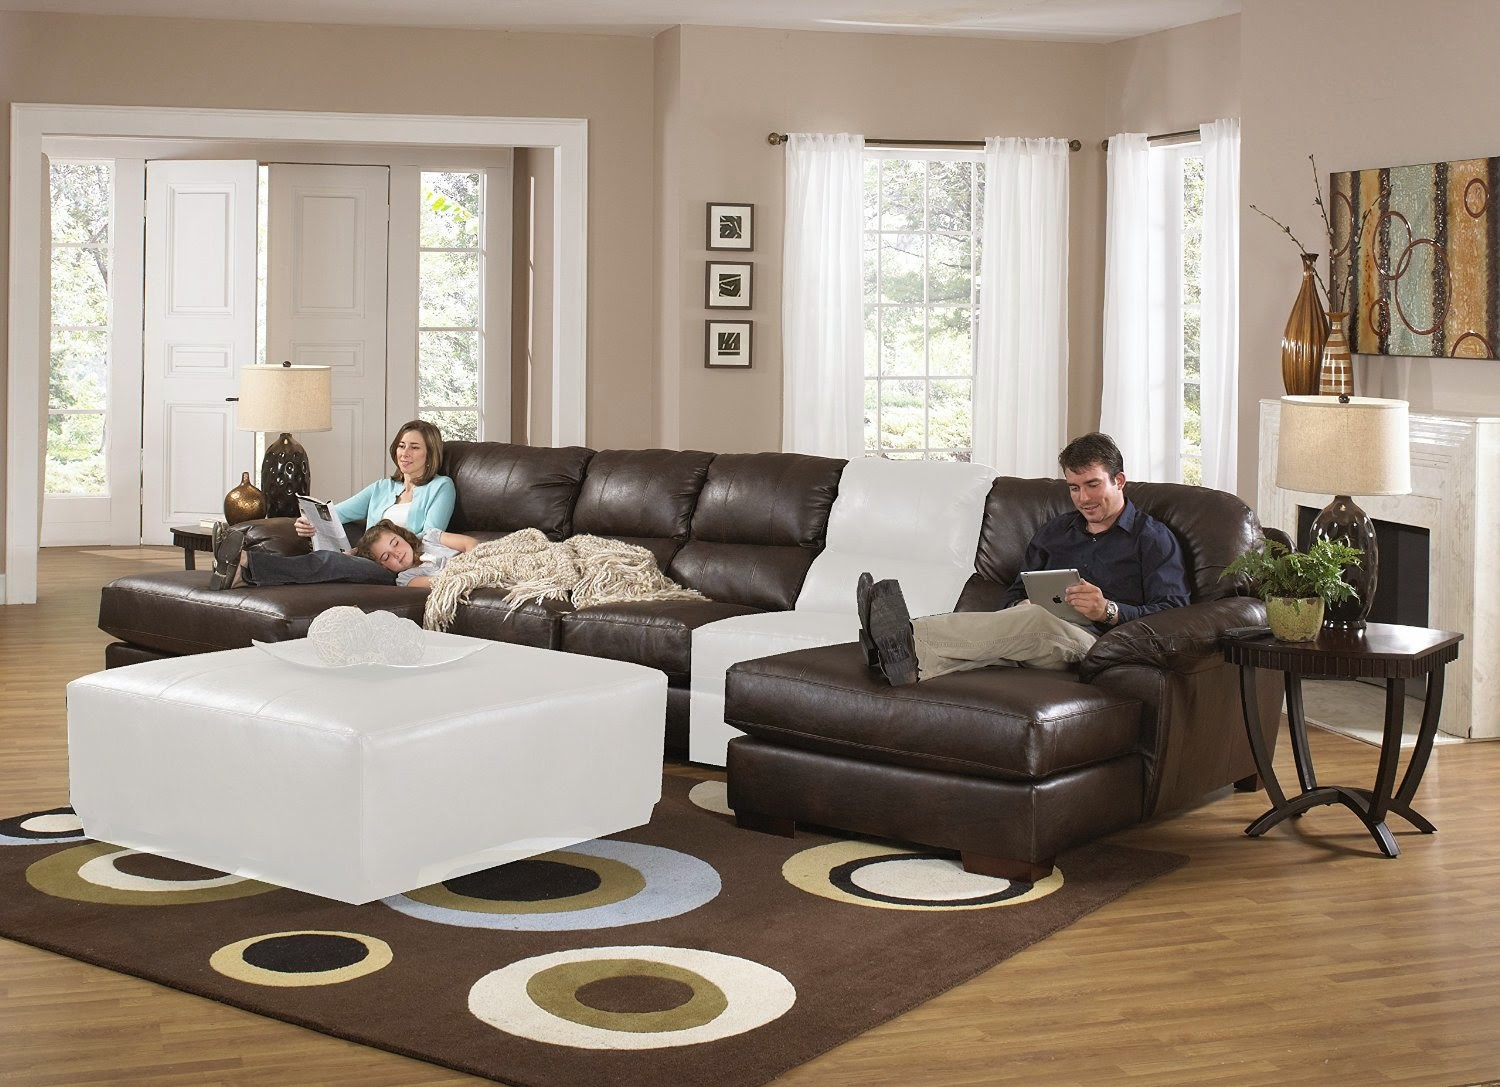 Cheap Reclining Sofas Sale: England Sleeper Sectional Sofa ...